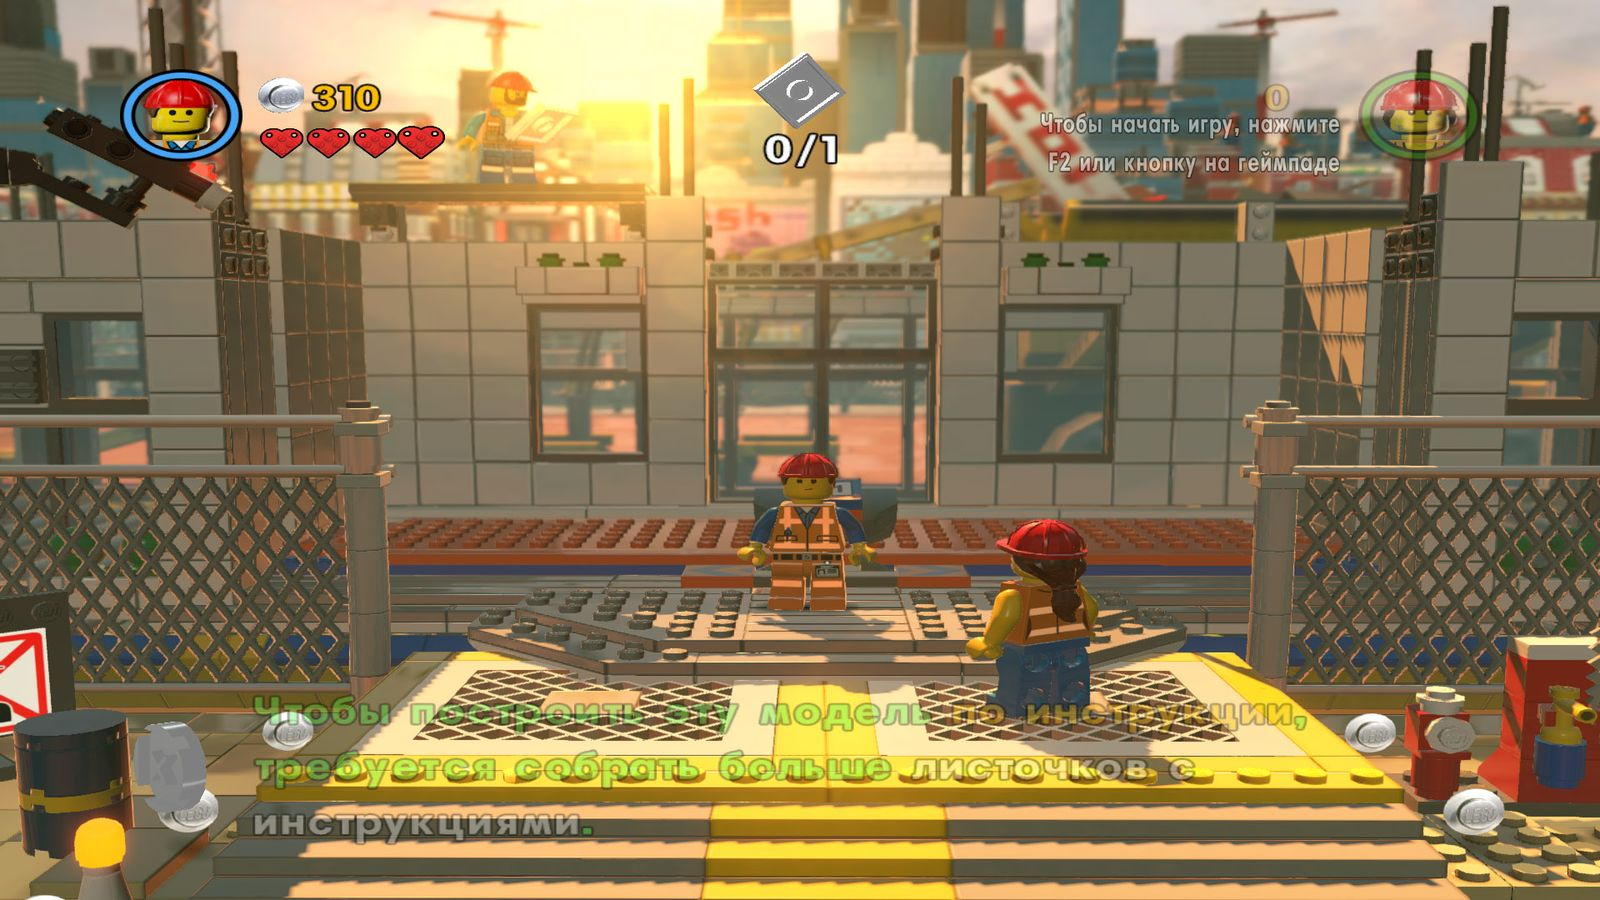 How to download lego movie video game pc full game free youtube.